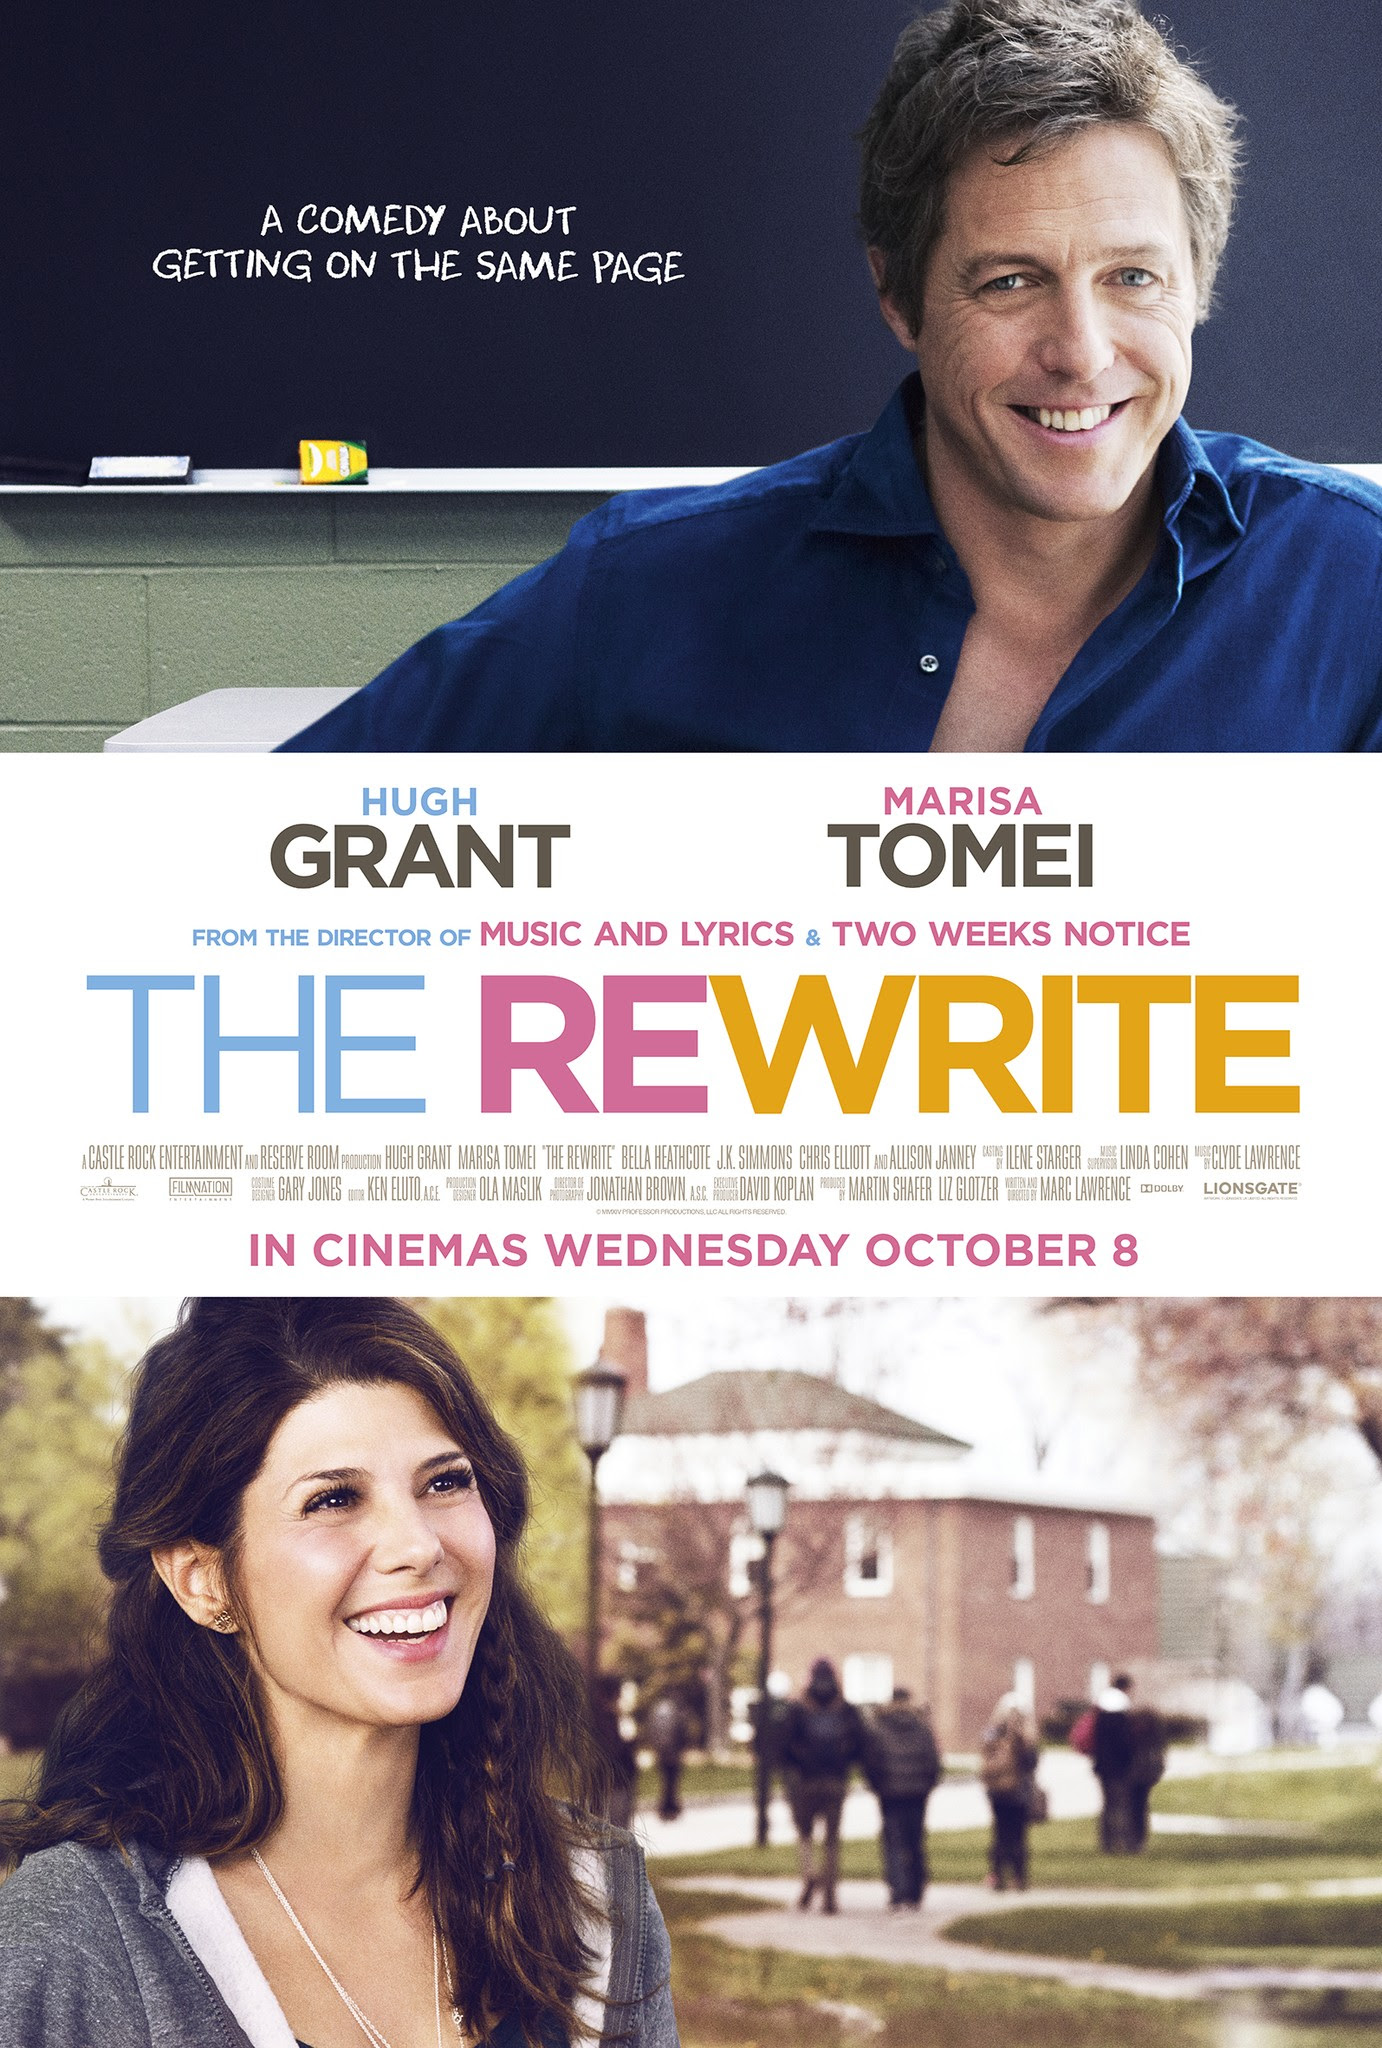 Mega Sized Movie Poster Image for The Rewrite